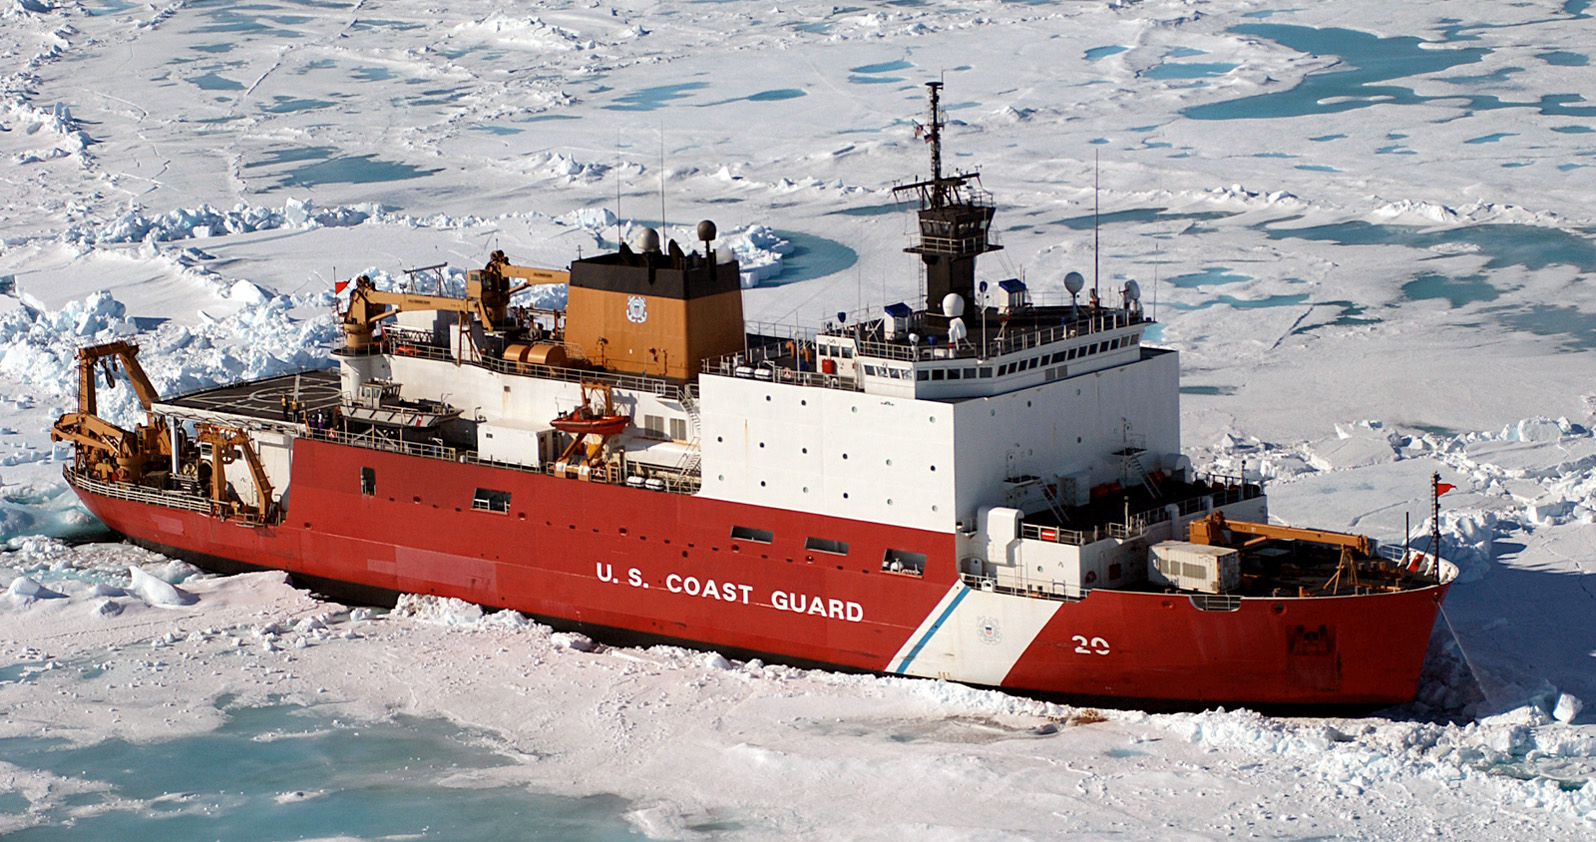 The U.S. Coast Guard Healy Class Icebreaker HEALY (WAGB 20) sits in the ice, about 100 miles north of Barrow, Alaska, in order to allow scientists onboard to take core samples from the floor of the Arctic Ocean on June 18, 2005. (U.S. Coast Guard photo by Public Affairs Specialist 2nd Class NyxoLyno Cangemi) (Released)